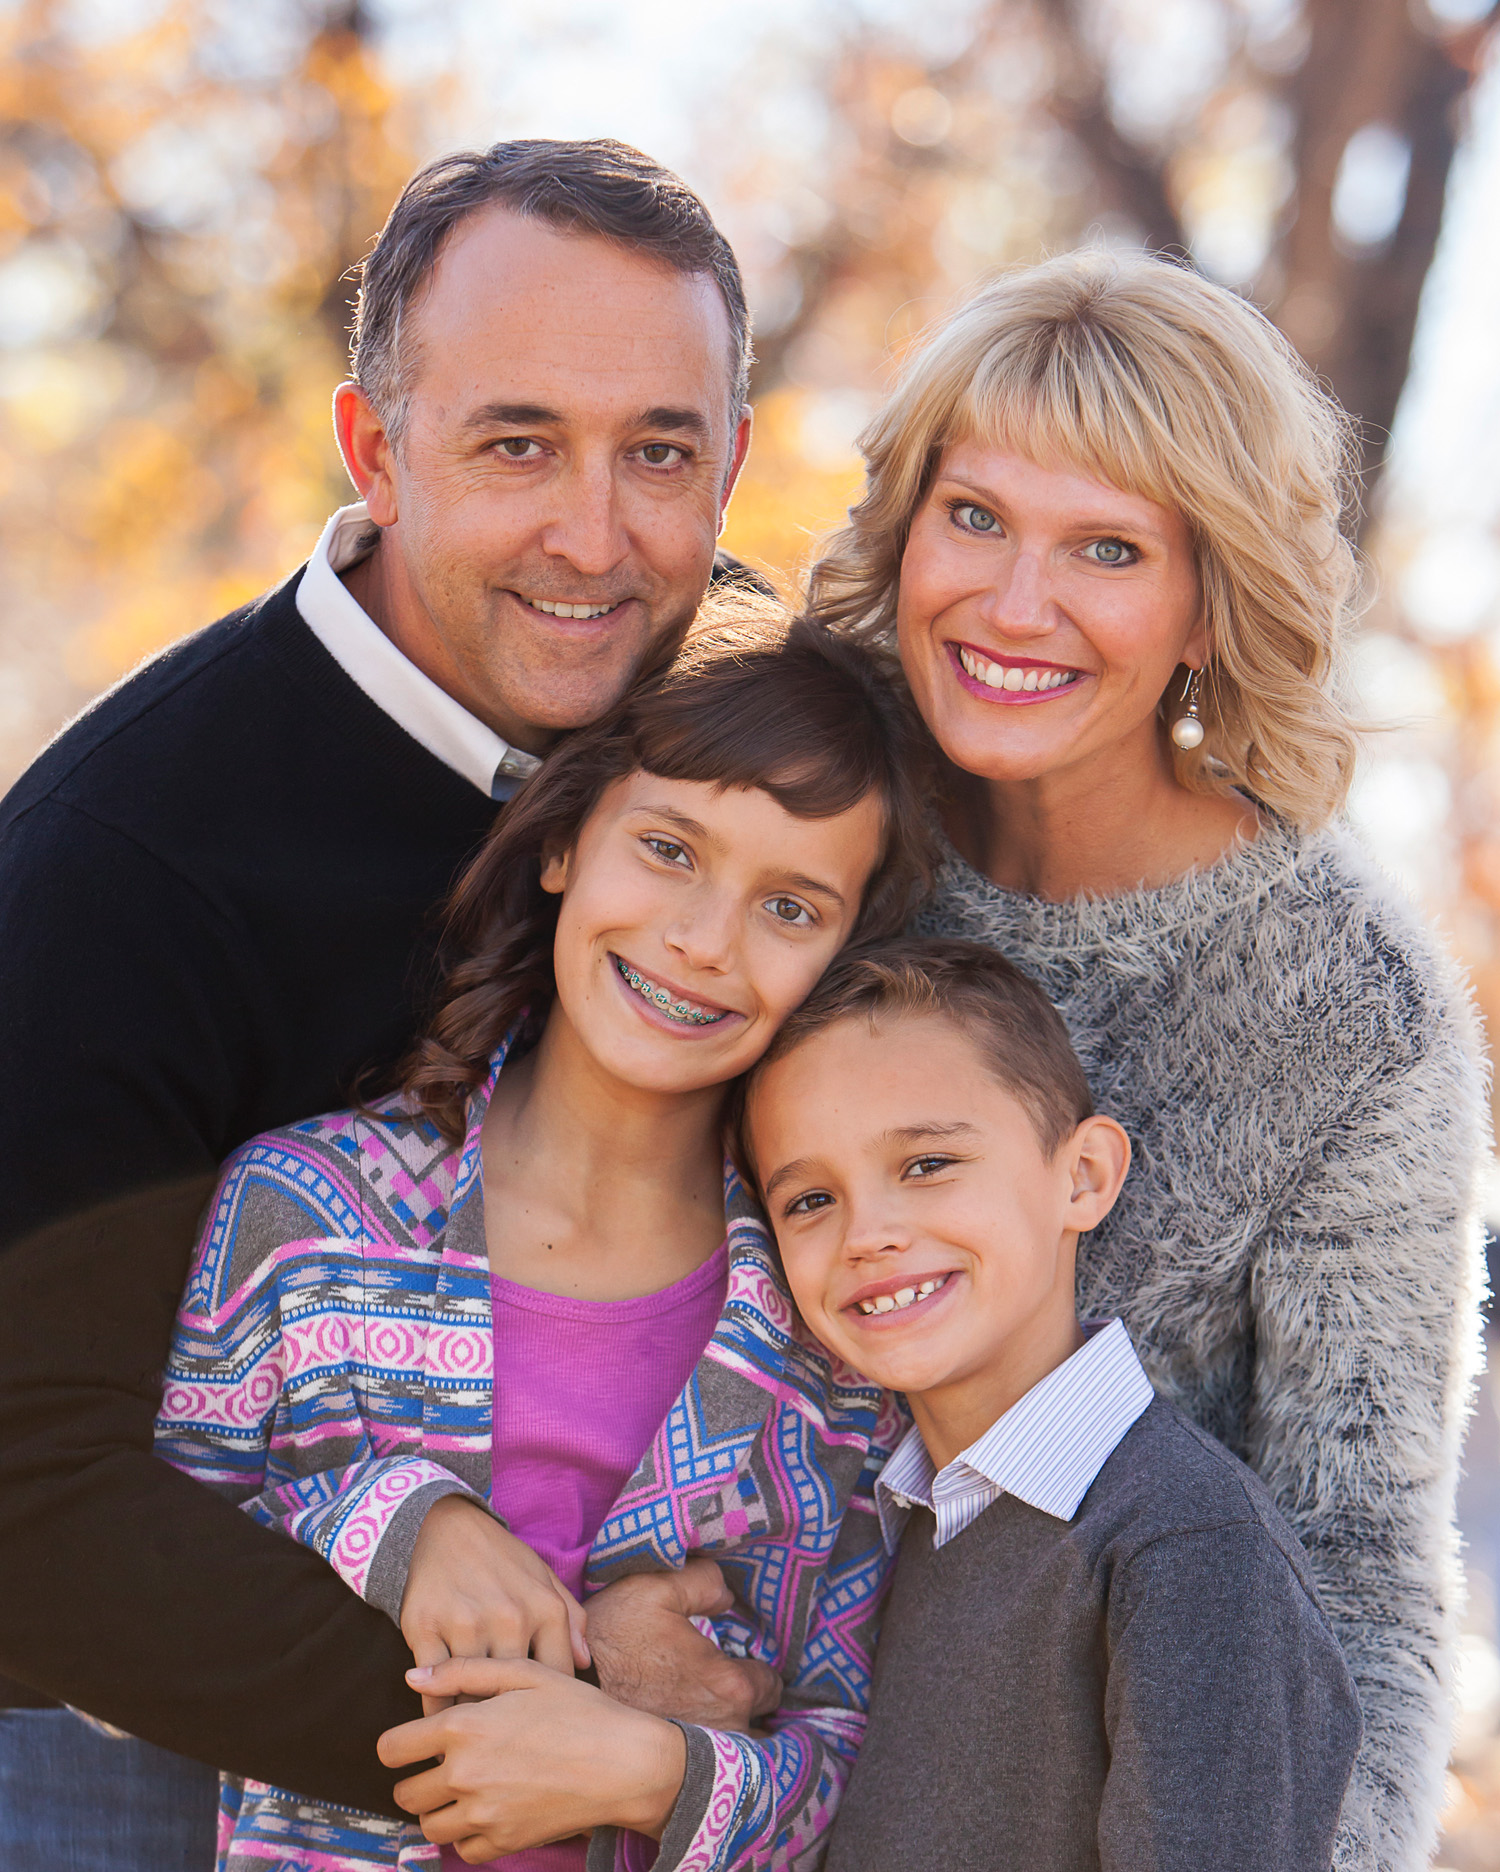 family-pictures-denver-merritt-photo